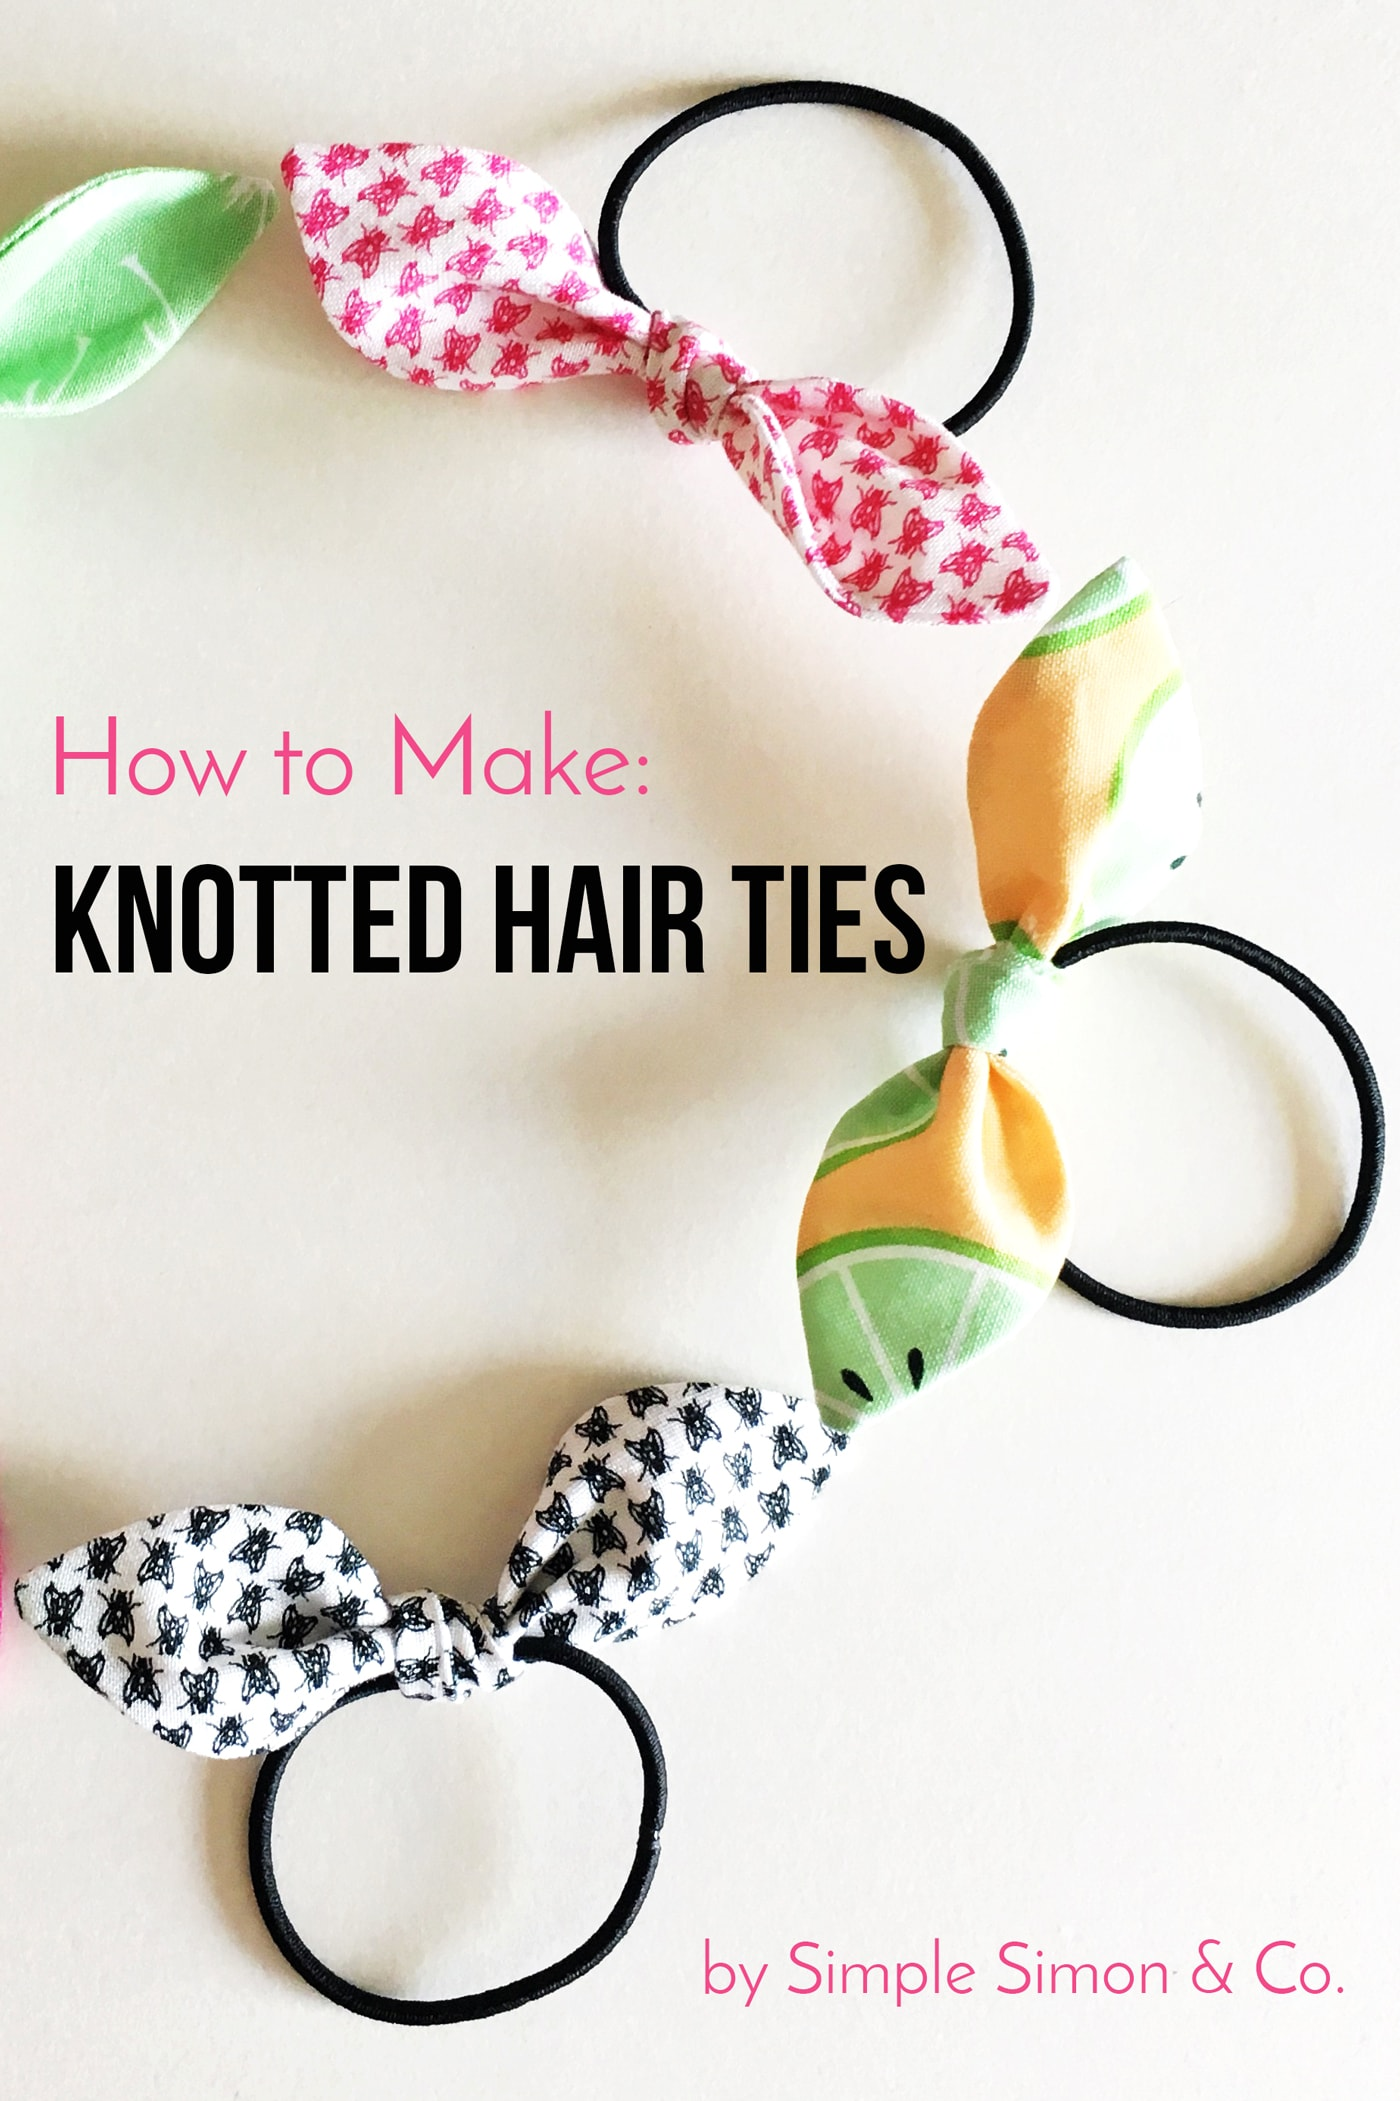 How To Make Knotted Hair Ties The Polka Dot Chair